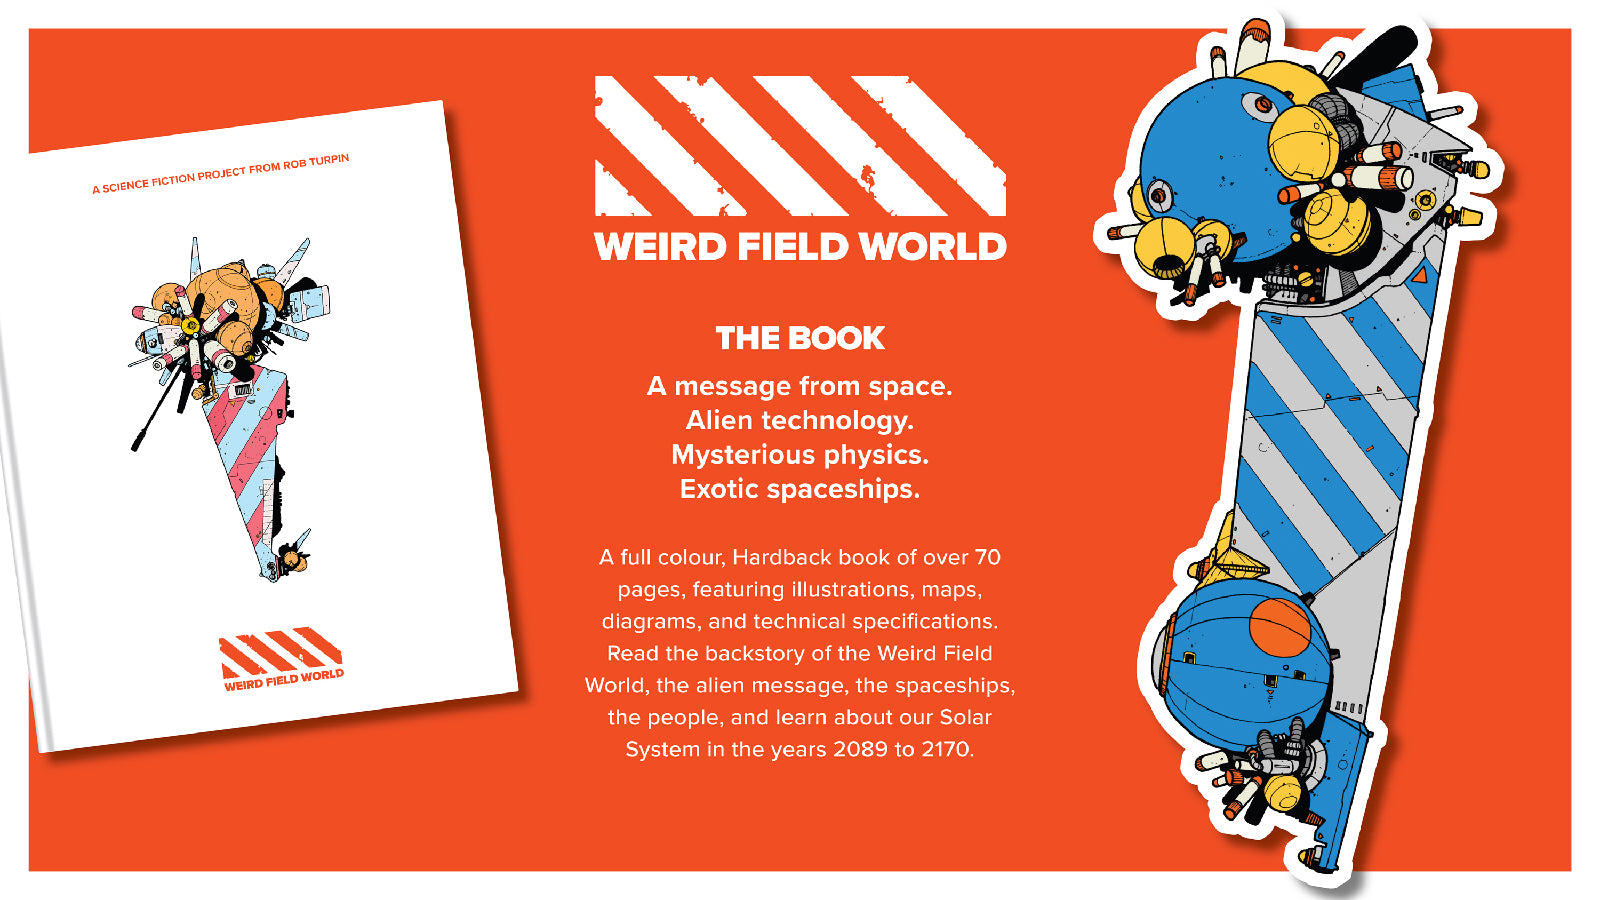 Weird Field World Kickstarter campaign